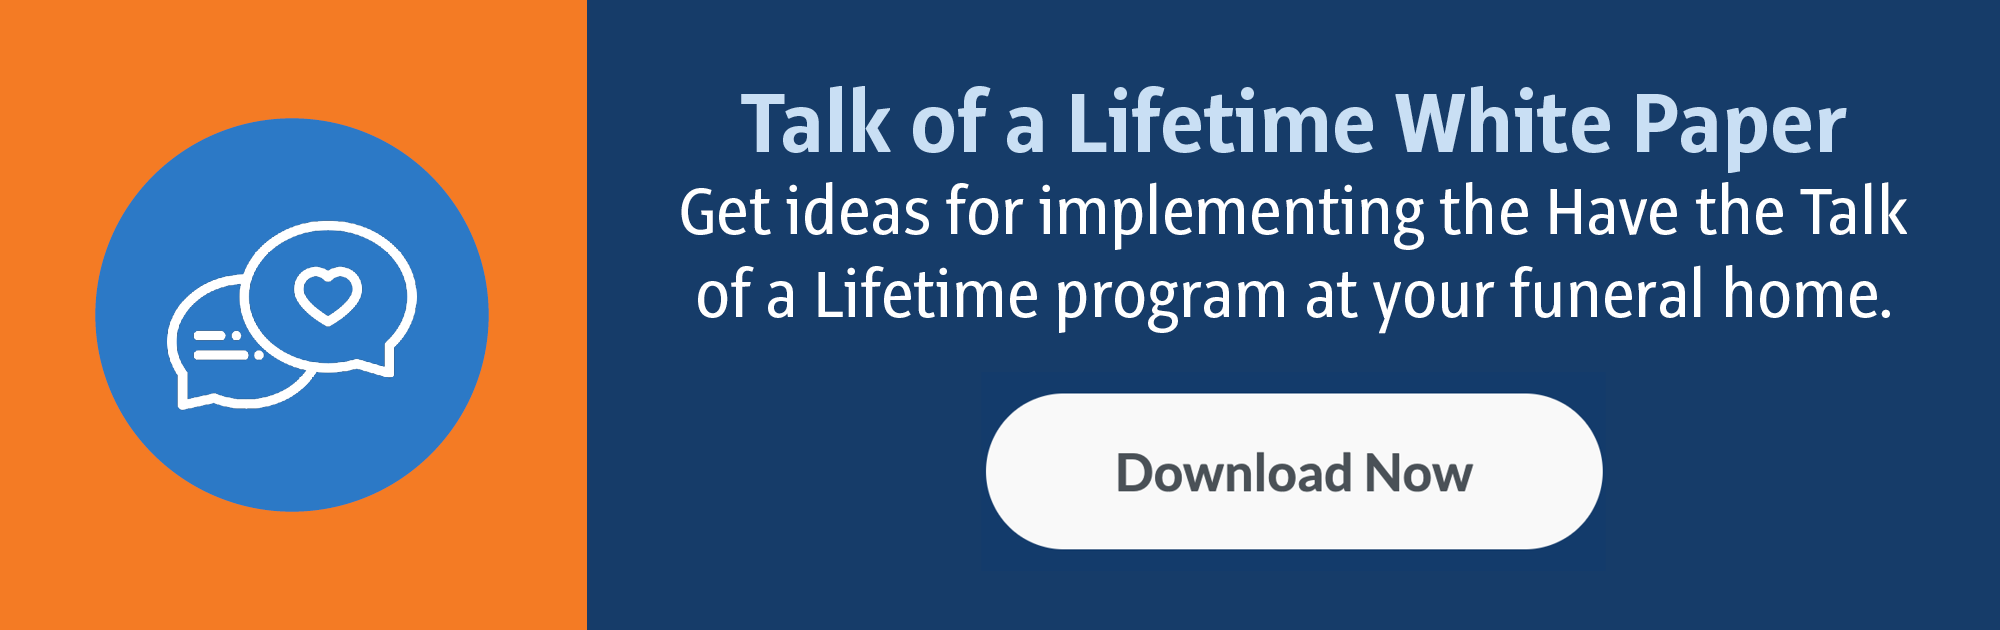 Talk of a Lifetime White Paper: Get ideas for implementing the Have the Talk of a Lifetime program at your funeral home. (Download Now)